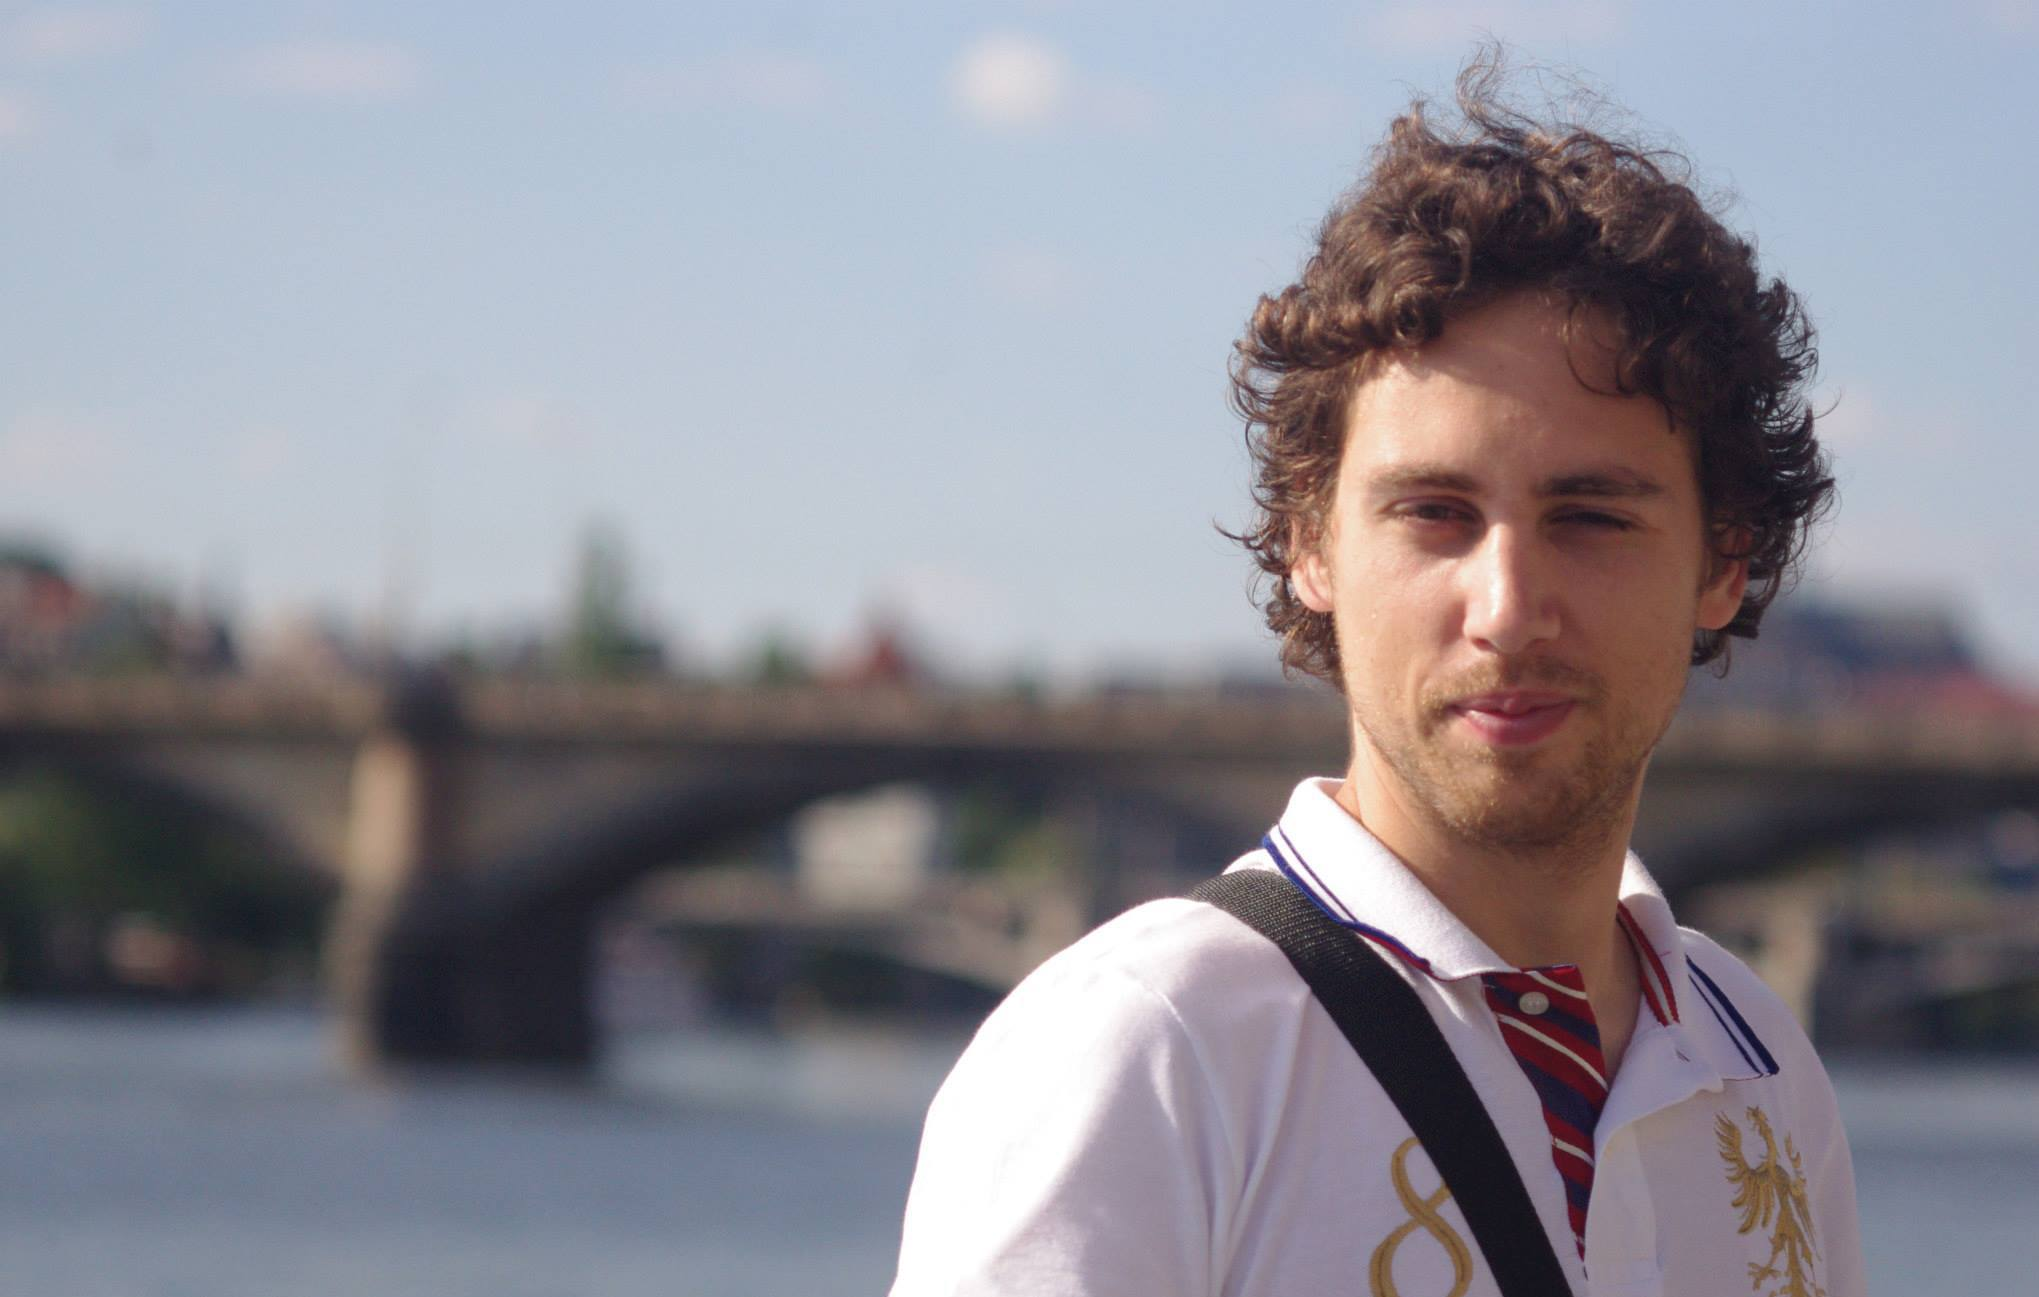 Interview with Pavel Zbornik, EU Official and AEGEE Member